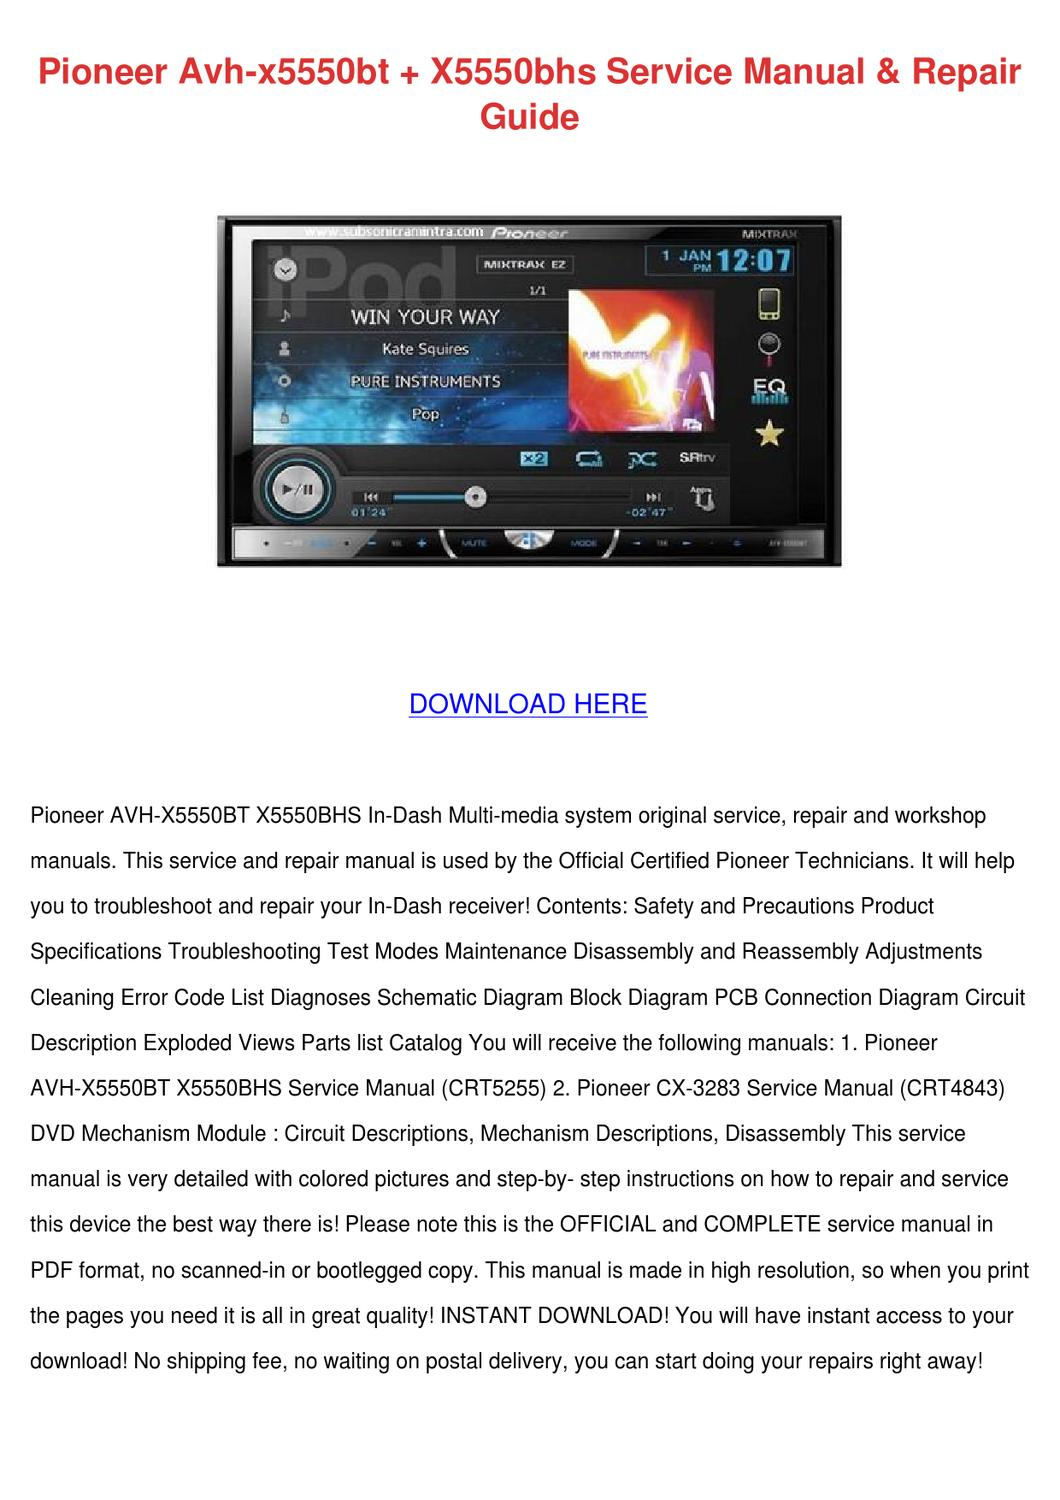 page_1 pioneer avh x5550bt x5550bhs service manual r by kaseyhoyt issuu pioneer avh-x5550bt wiring diagram at mifinder.co